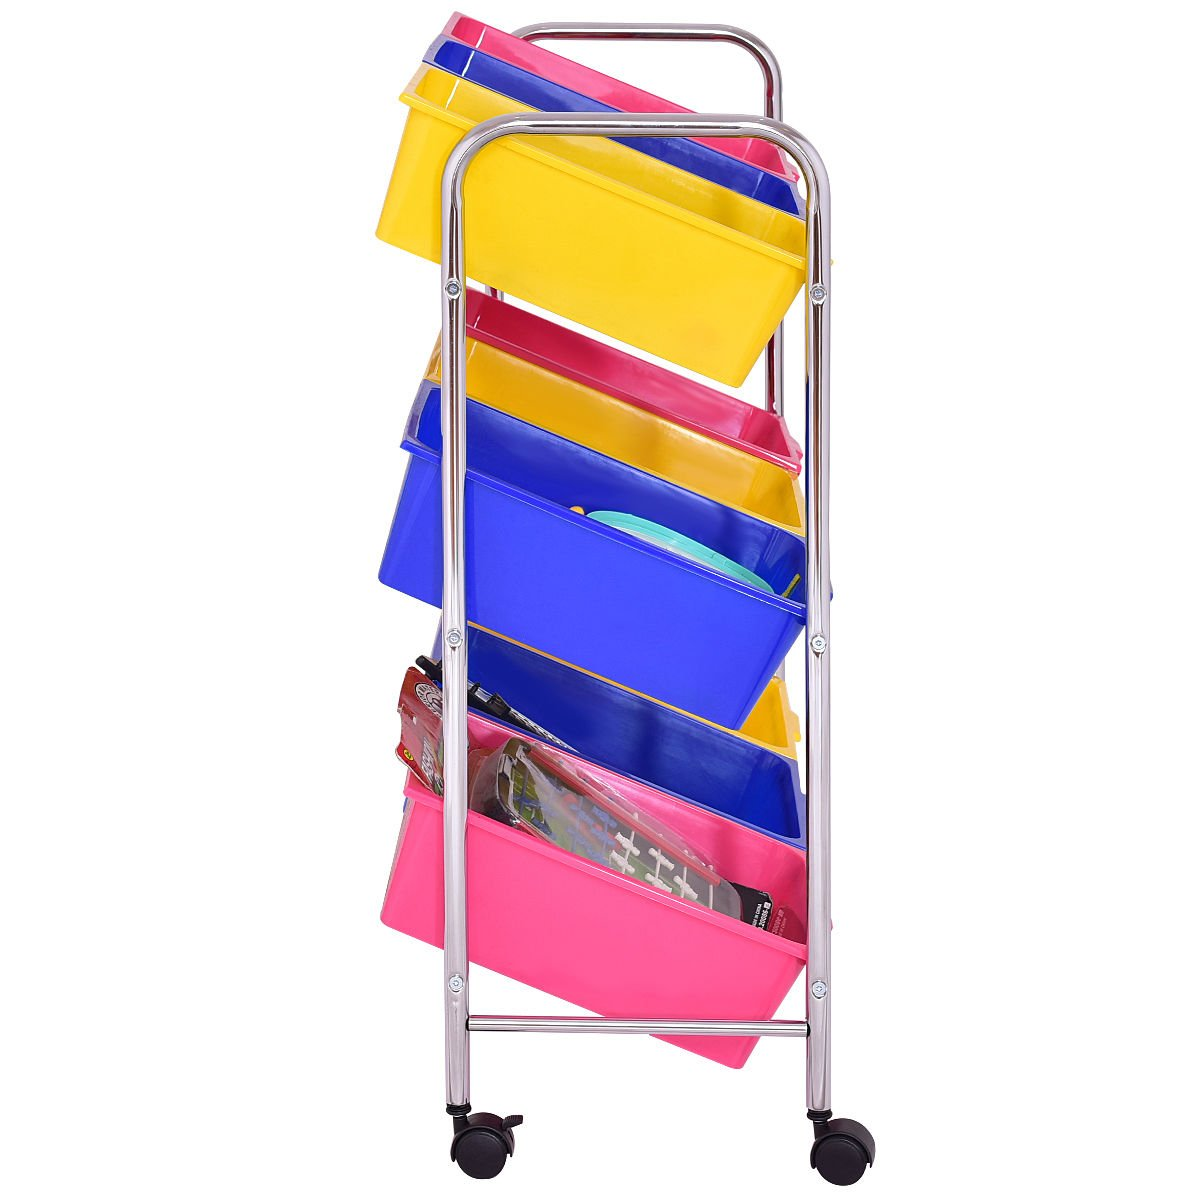 KCHEX>Toy Bin Cart Rack Organizer Kids Childrens Storage Box Playroom Bedroom Shelf>This is Our 9 Plastic Drawer Rolling cart, which is of and Brand New. Thanks to its Colorful Plastic by KCHEX (Image #4)